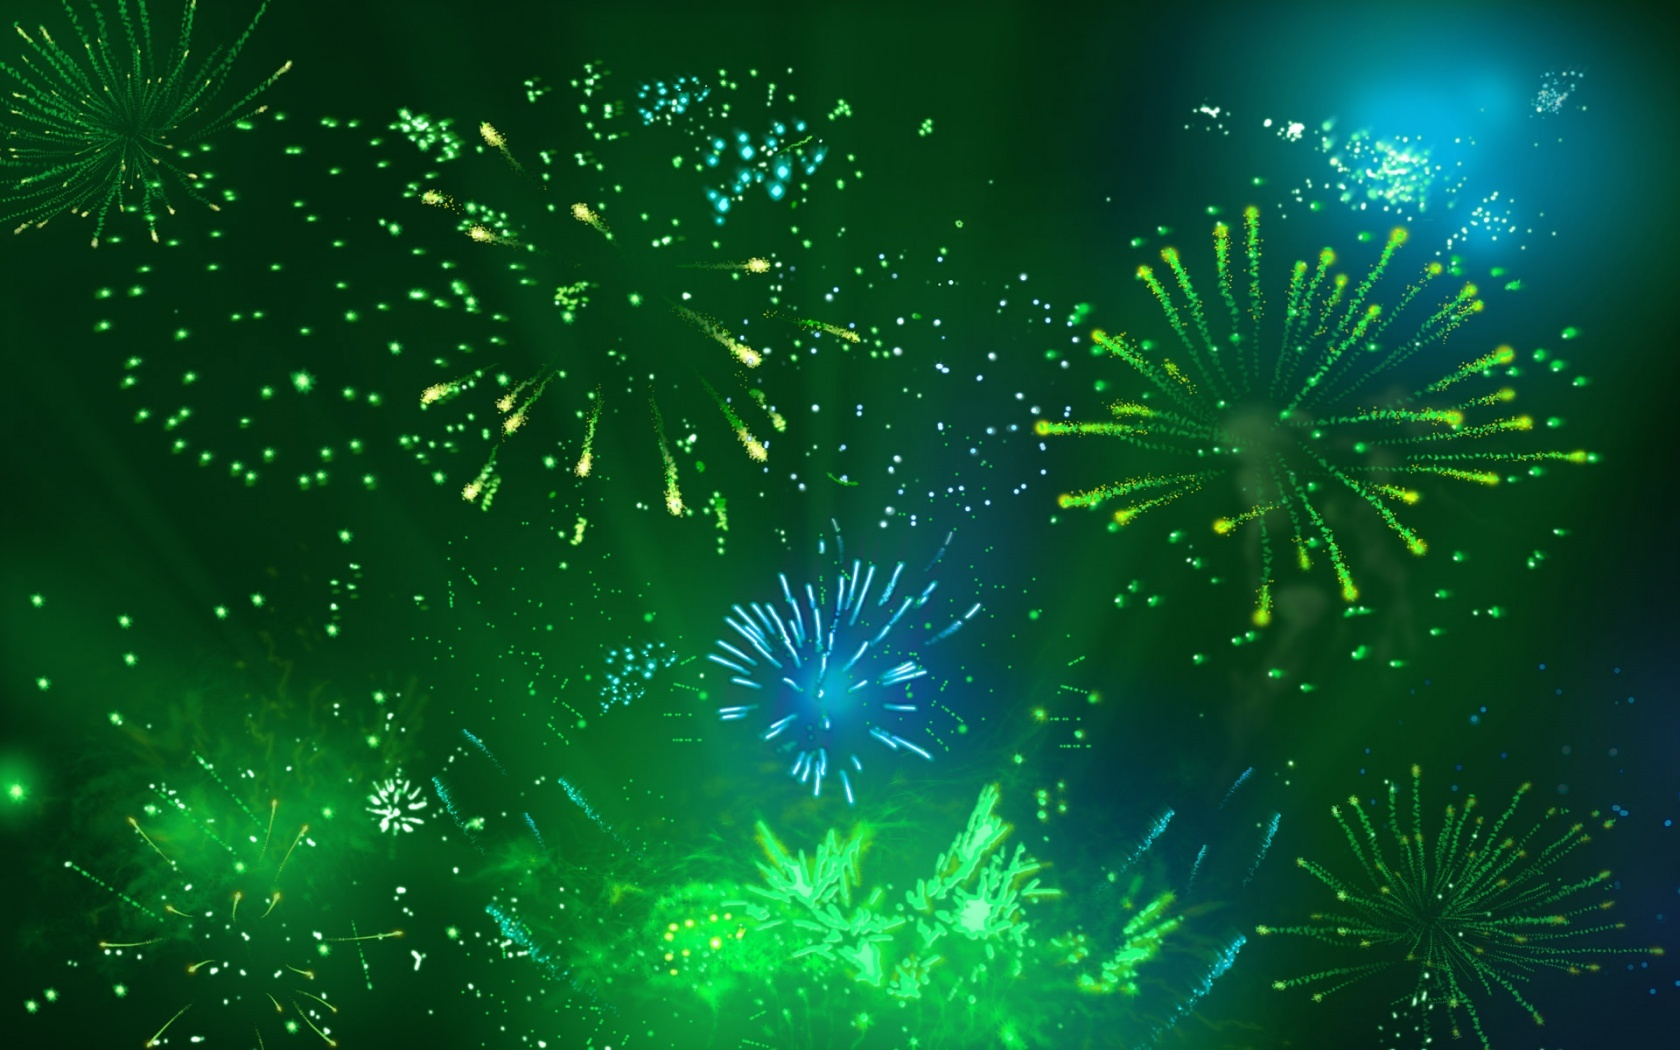 Abstract wallpapers hd fireworks green hd desktop wallpapers 4k hd abstract wallpapers hd fireworks green voltagebd